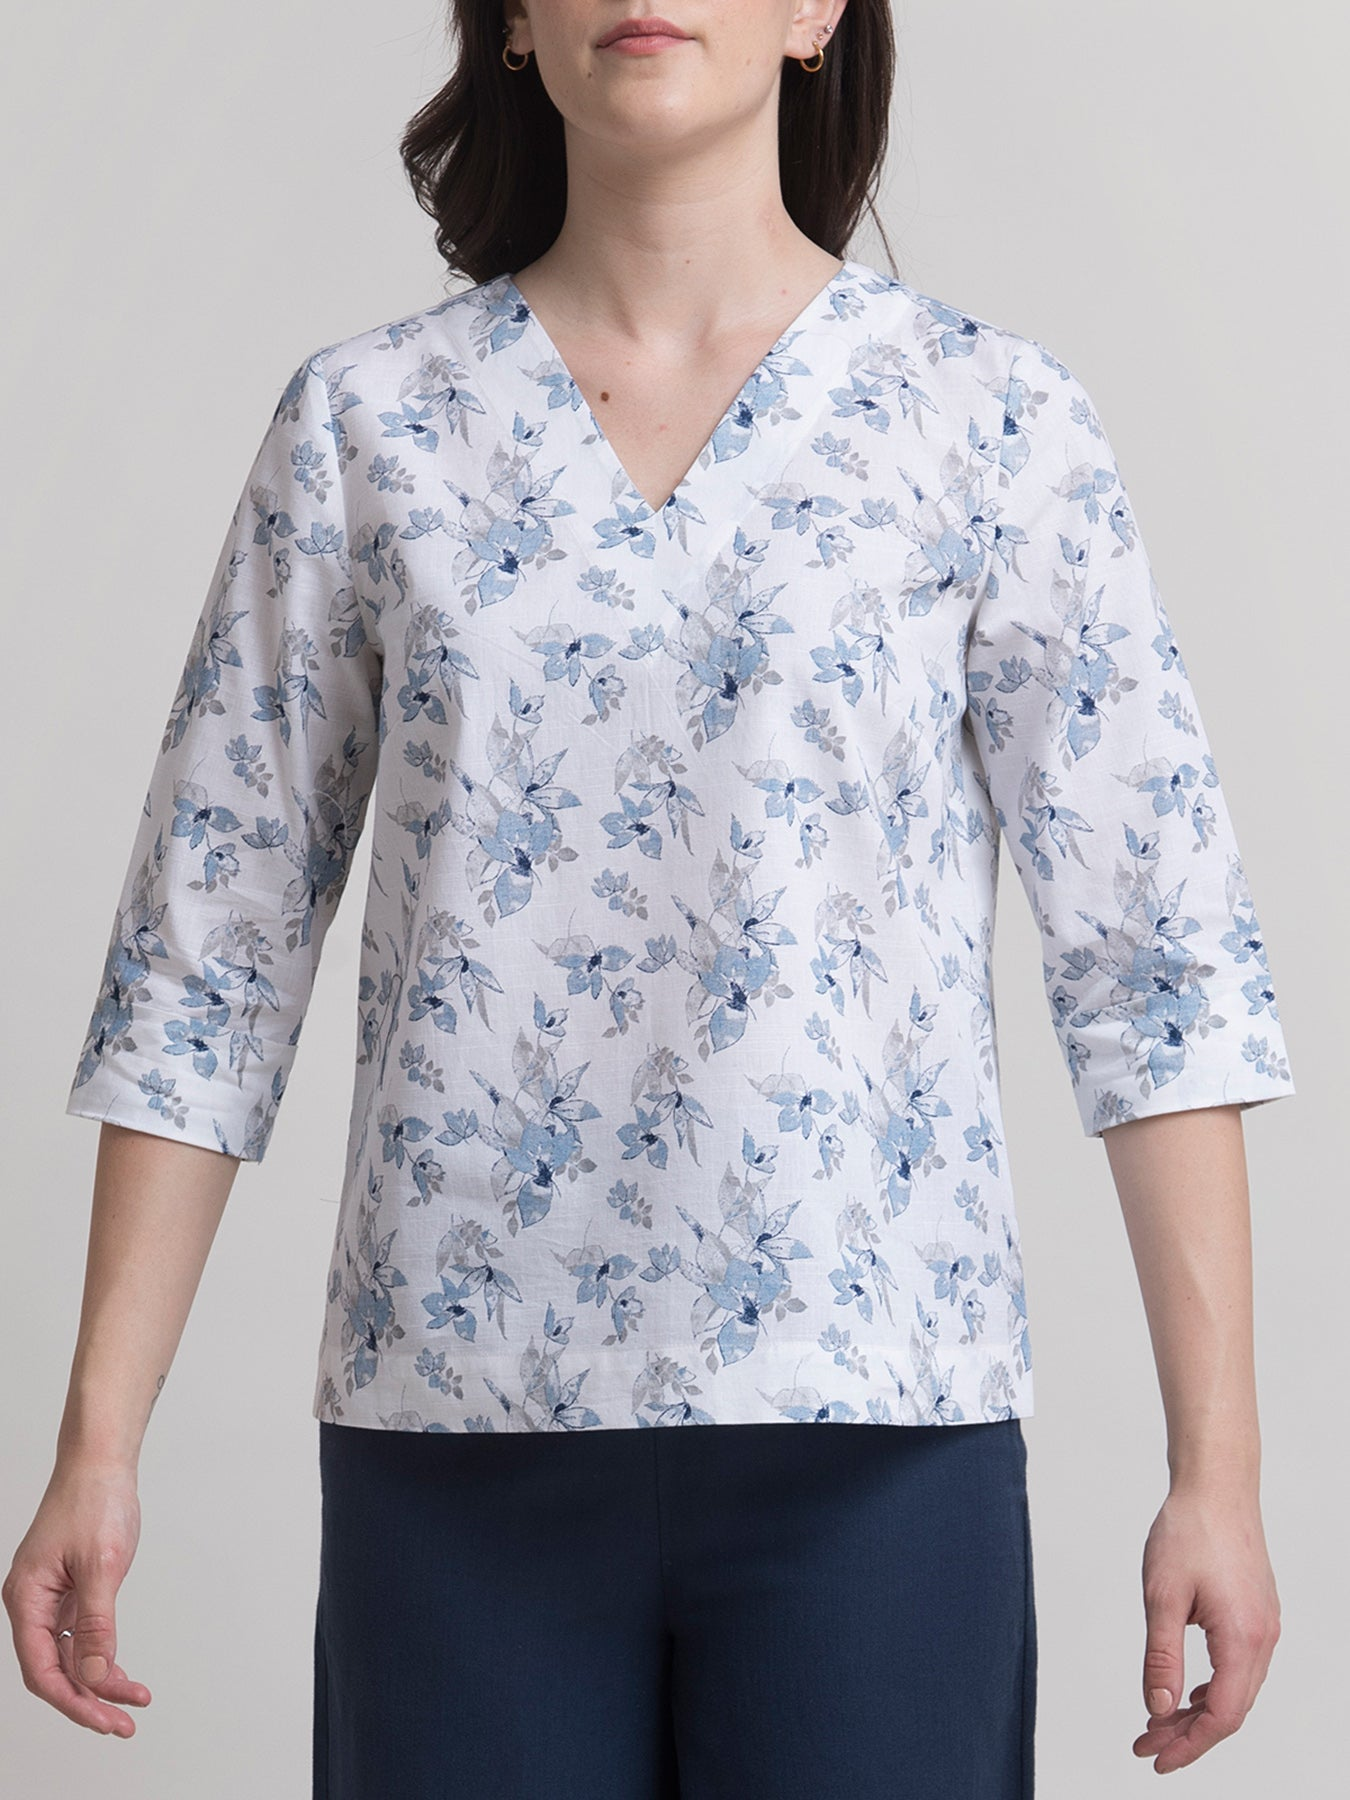 Linen V Neck Floral Top - White and Blue